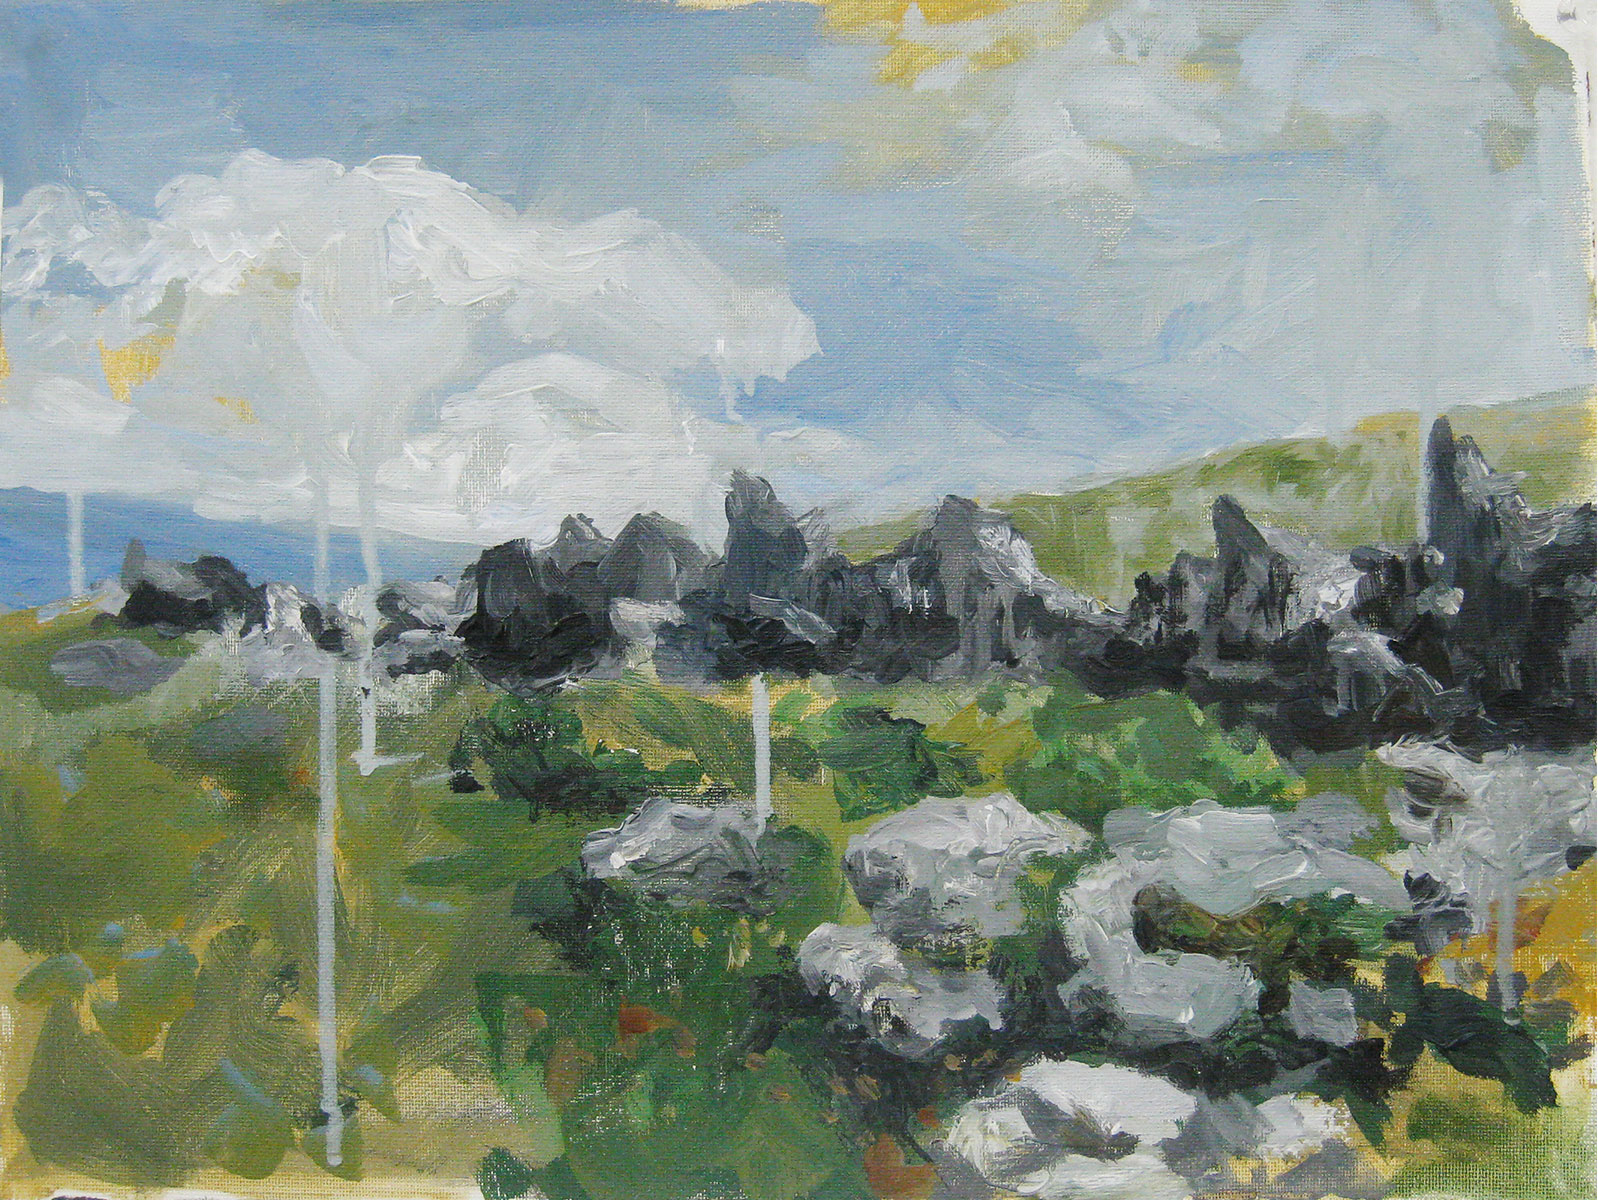 Landscape Study  2011 11x18  acrylic on canvas